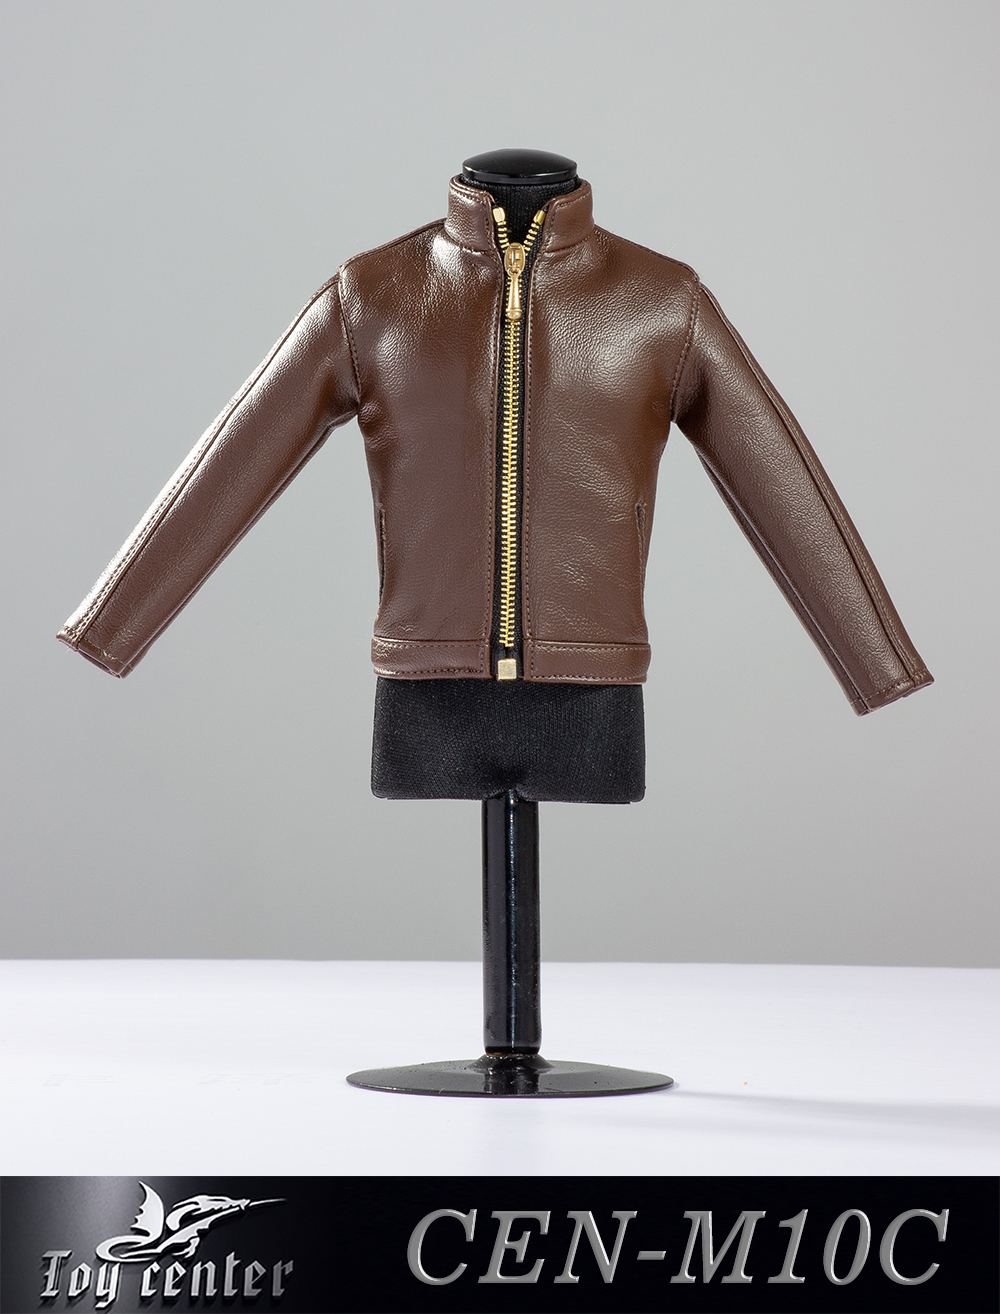 clothes - NEW PRODUCT: Toy center: 1/6 US team trend leather suit - a total of three colors A / B / C (CEN-M10 #) 13143611